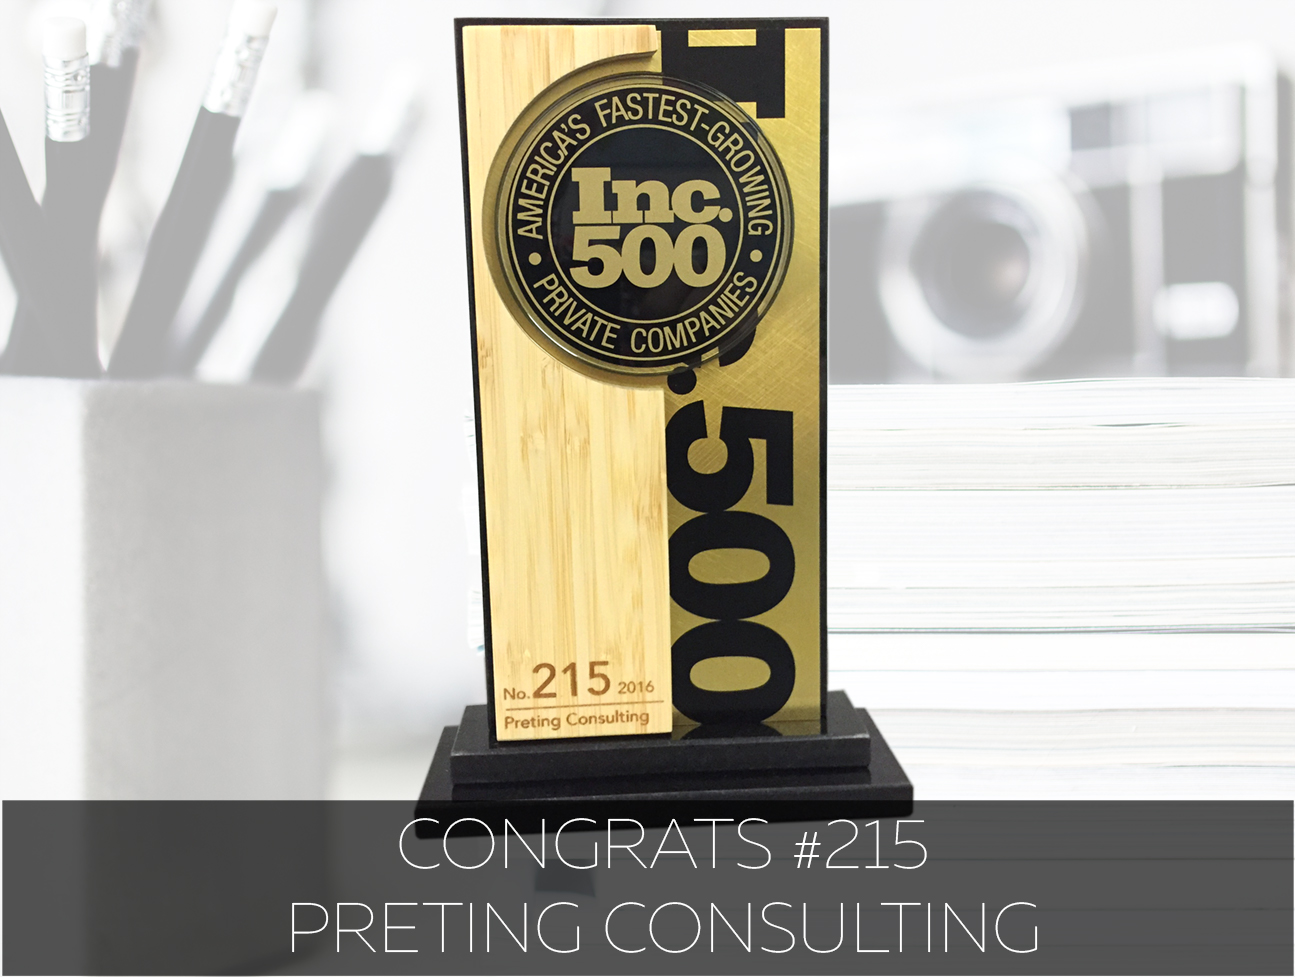 Preting Consulting Inc. 500 Award